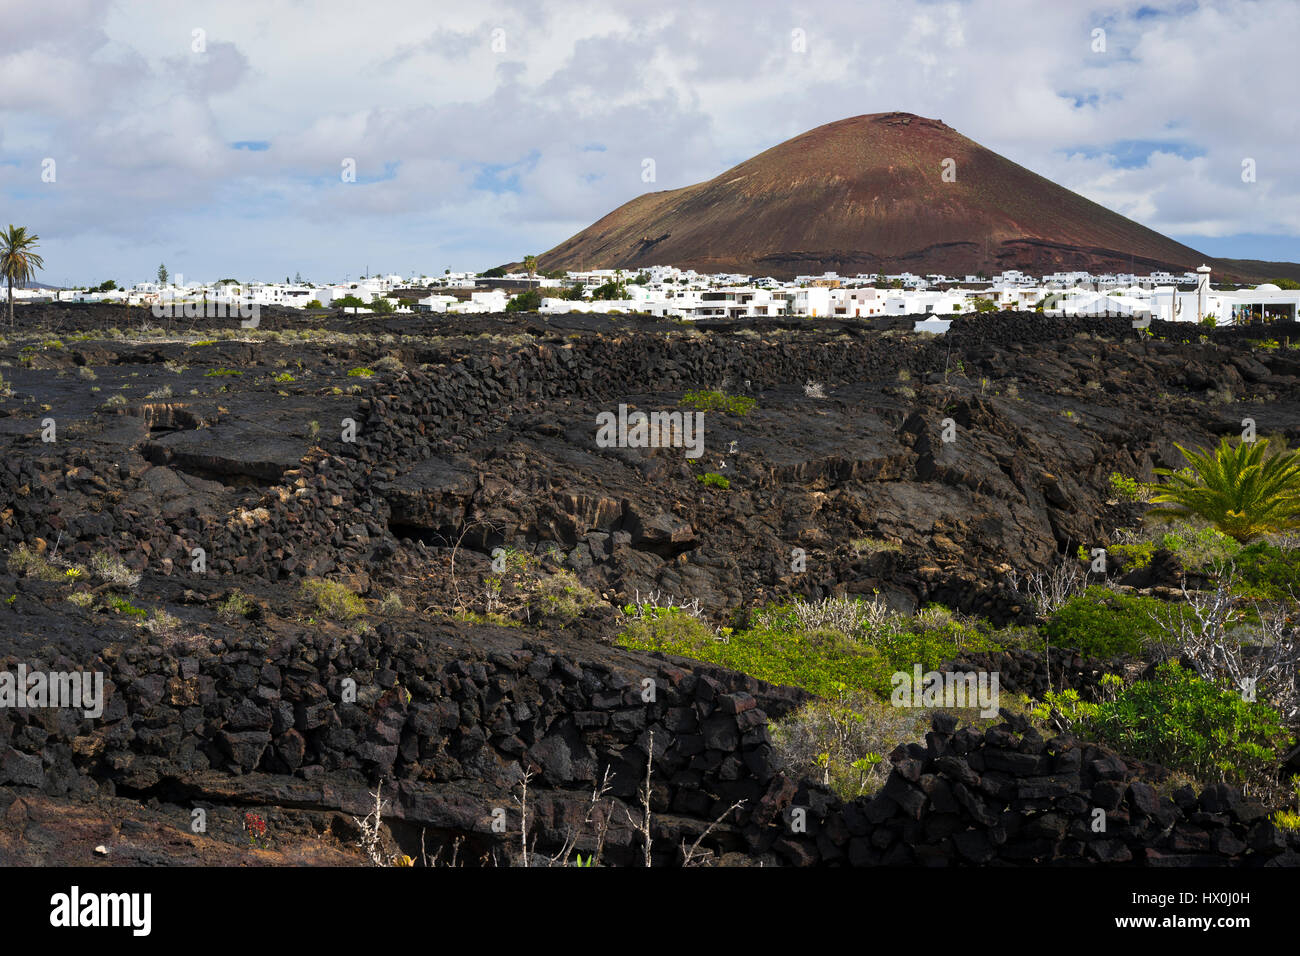 view on the typical Landscape and the La Woerden Volcano near Tahiche, Lanzarote, Spain - Stock Image